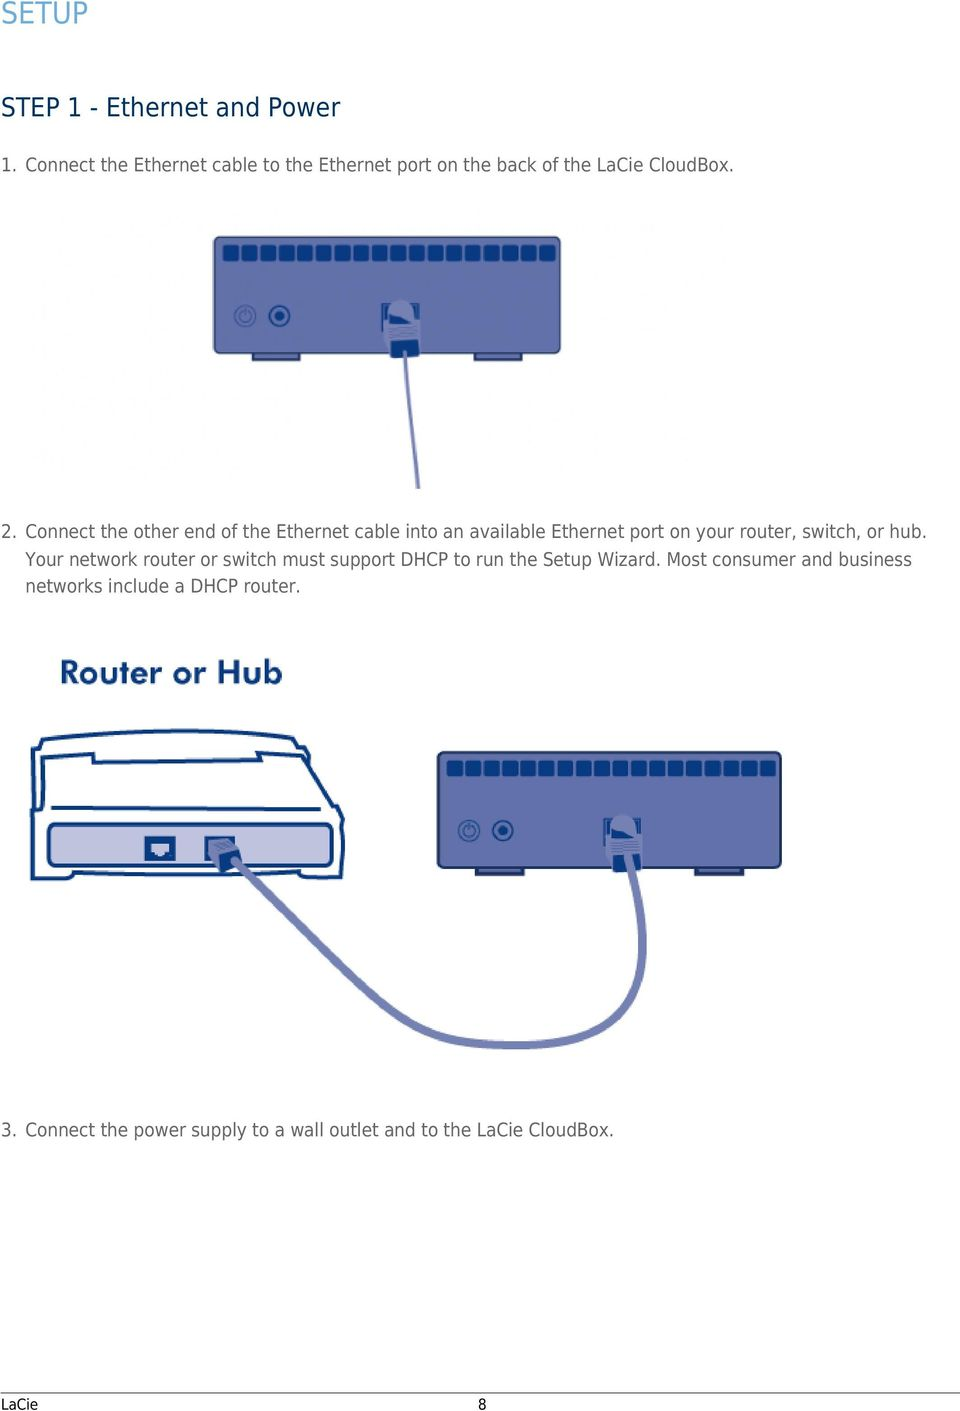 Connect the other end of the Ethernet cable into an available Ethernet port on your router, switch, or